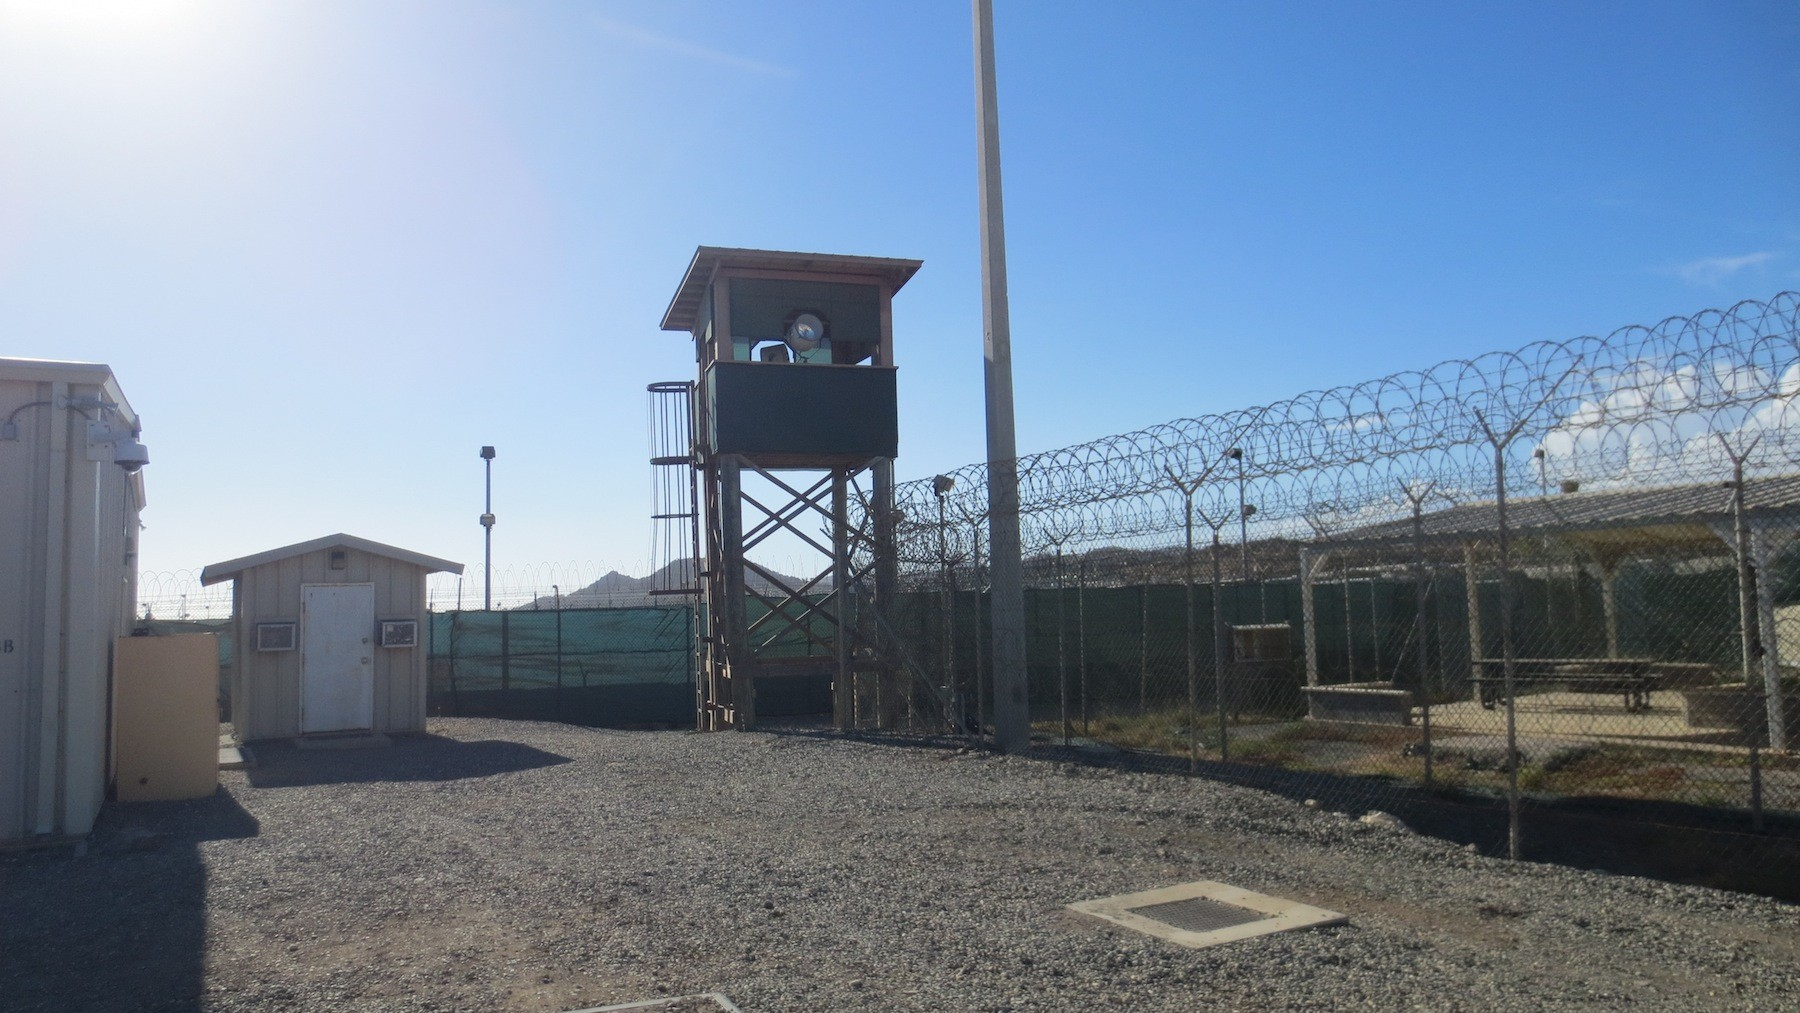 A Detainee Claims There's a New Crackdown on Prisoners at Guantanamo